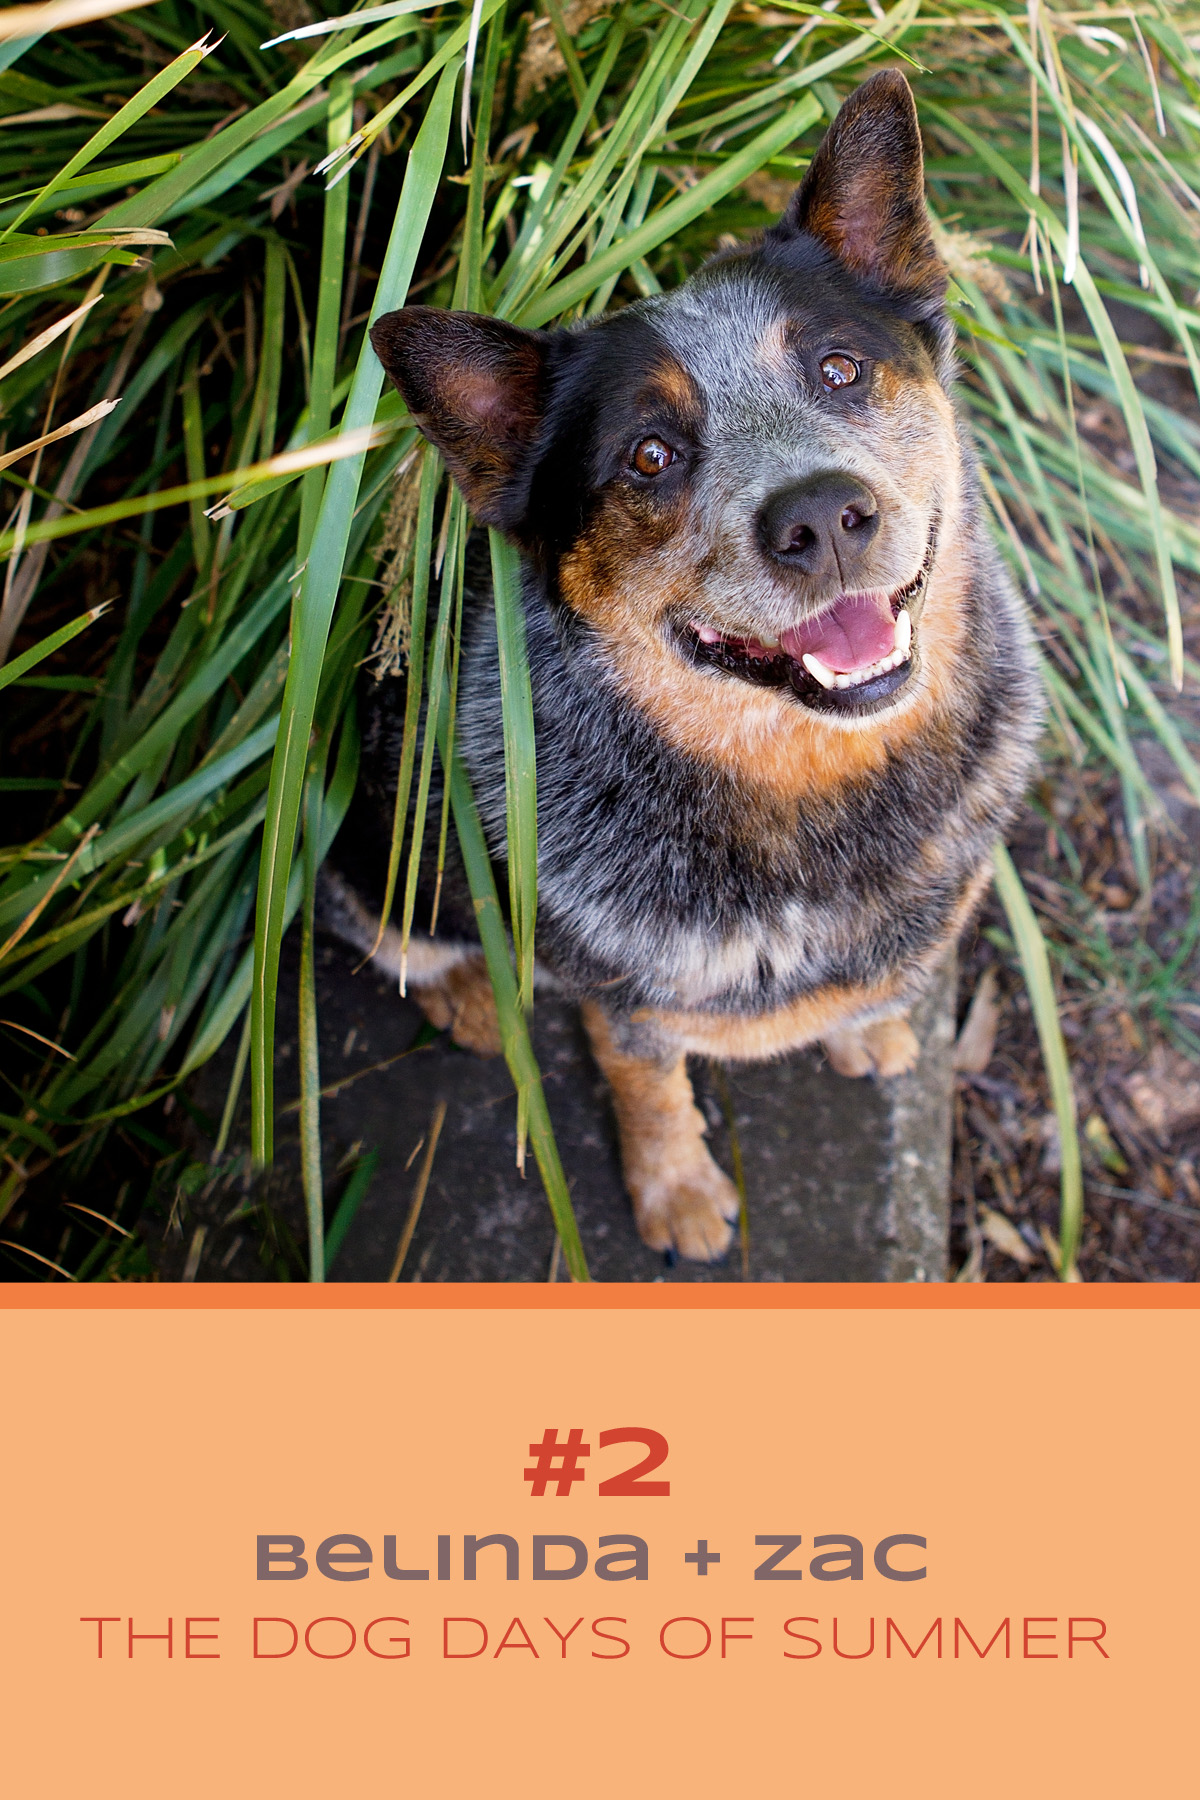 Blue Cattle dog Zac and his mum, Belinda, take part in the Dog Days of Summer at Sydney Park with Pawtastic Photography | Sydney Pet Photographer